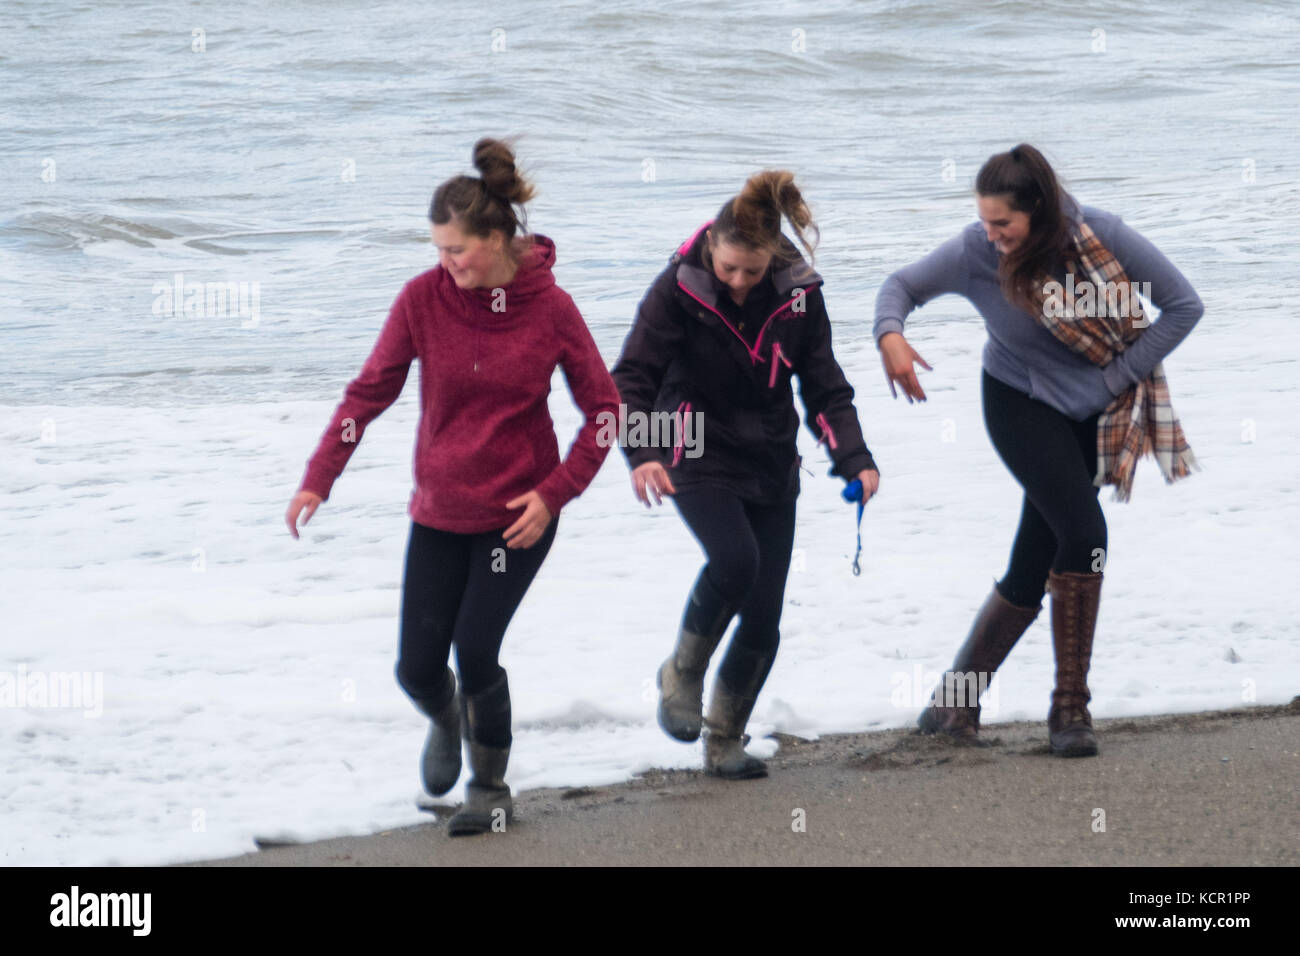 144154f6 Aberystwyth Wales UK, Saturday 07 October 2017 UK Weather: ~Three young  women get caught by the waves as they walk along the beach on a cloudy and  breezy ...